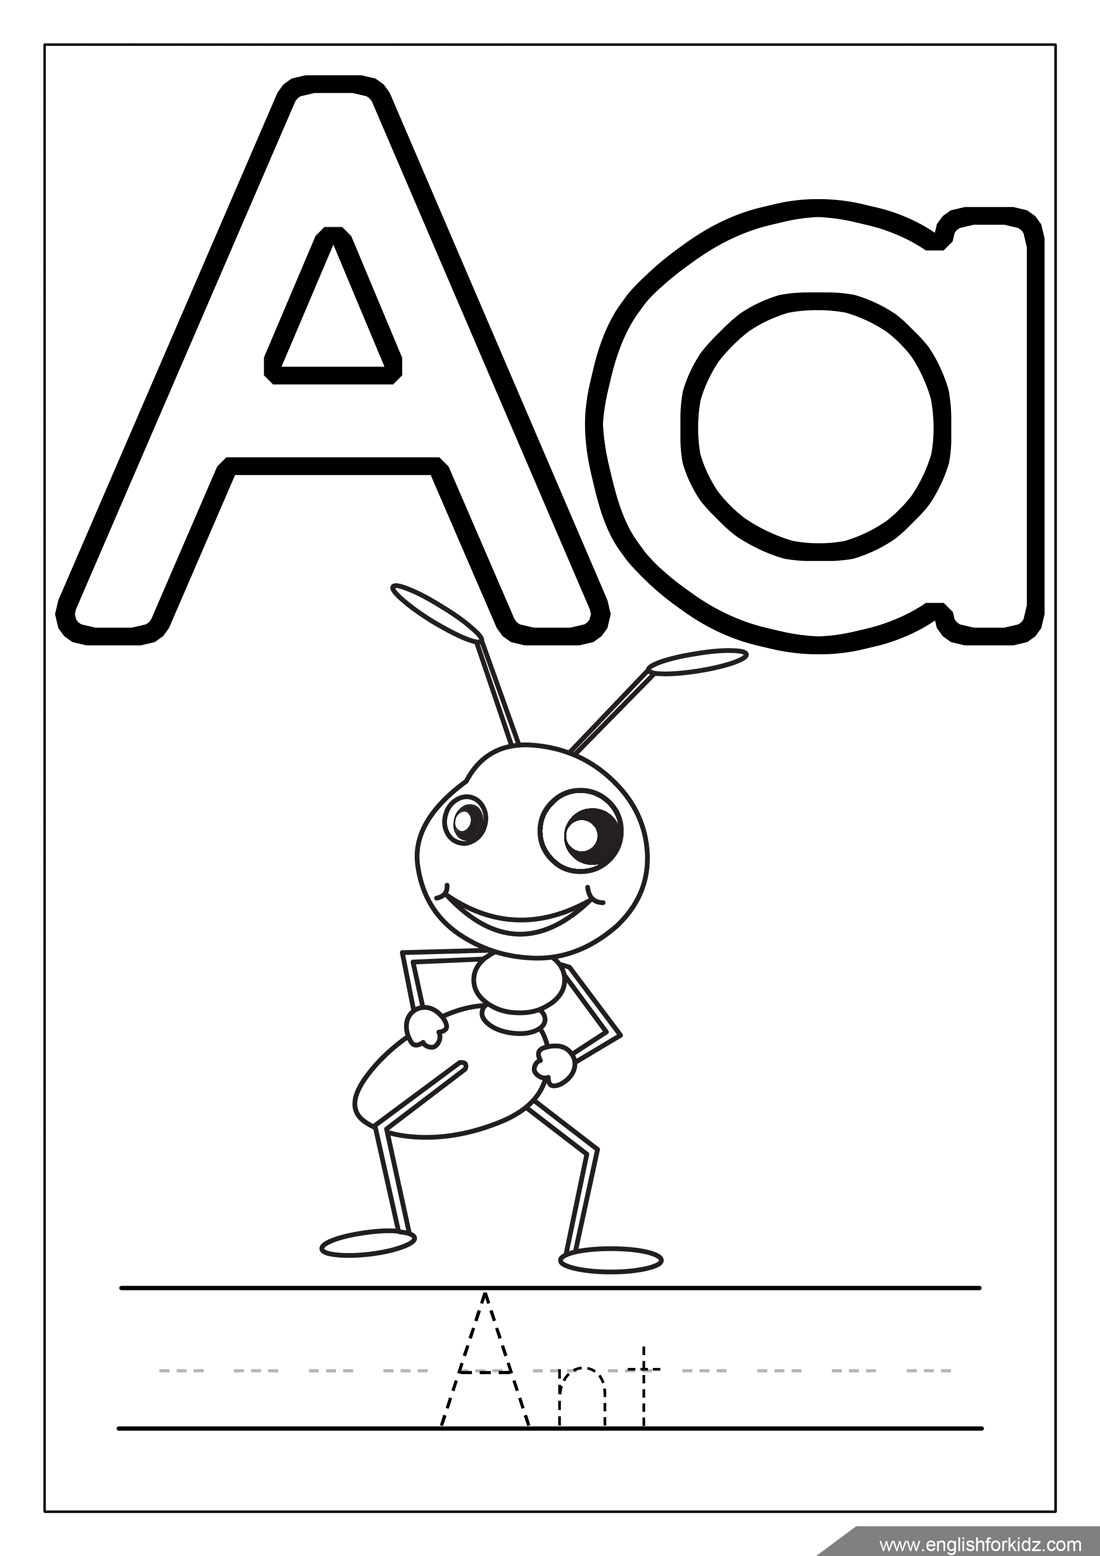 colouring letters a to z alphabet coloring pages a z coloring home colouring z a to letters